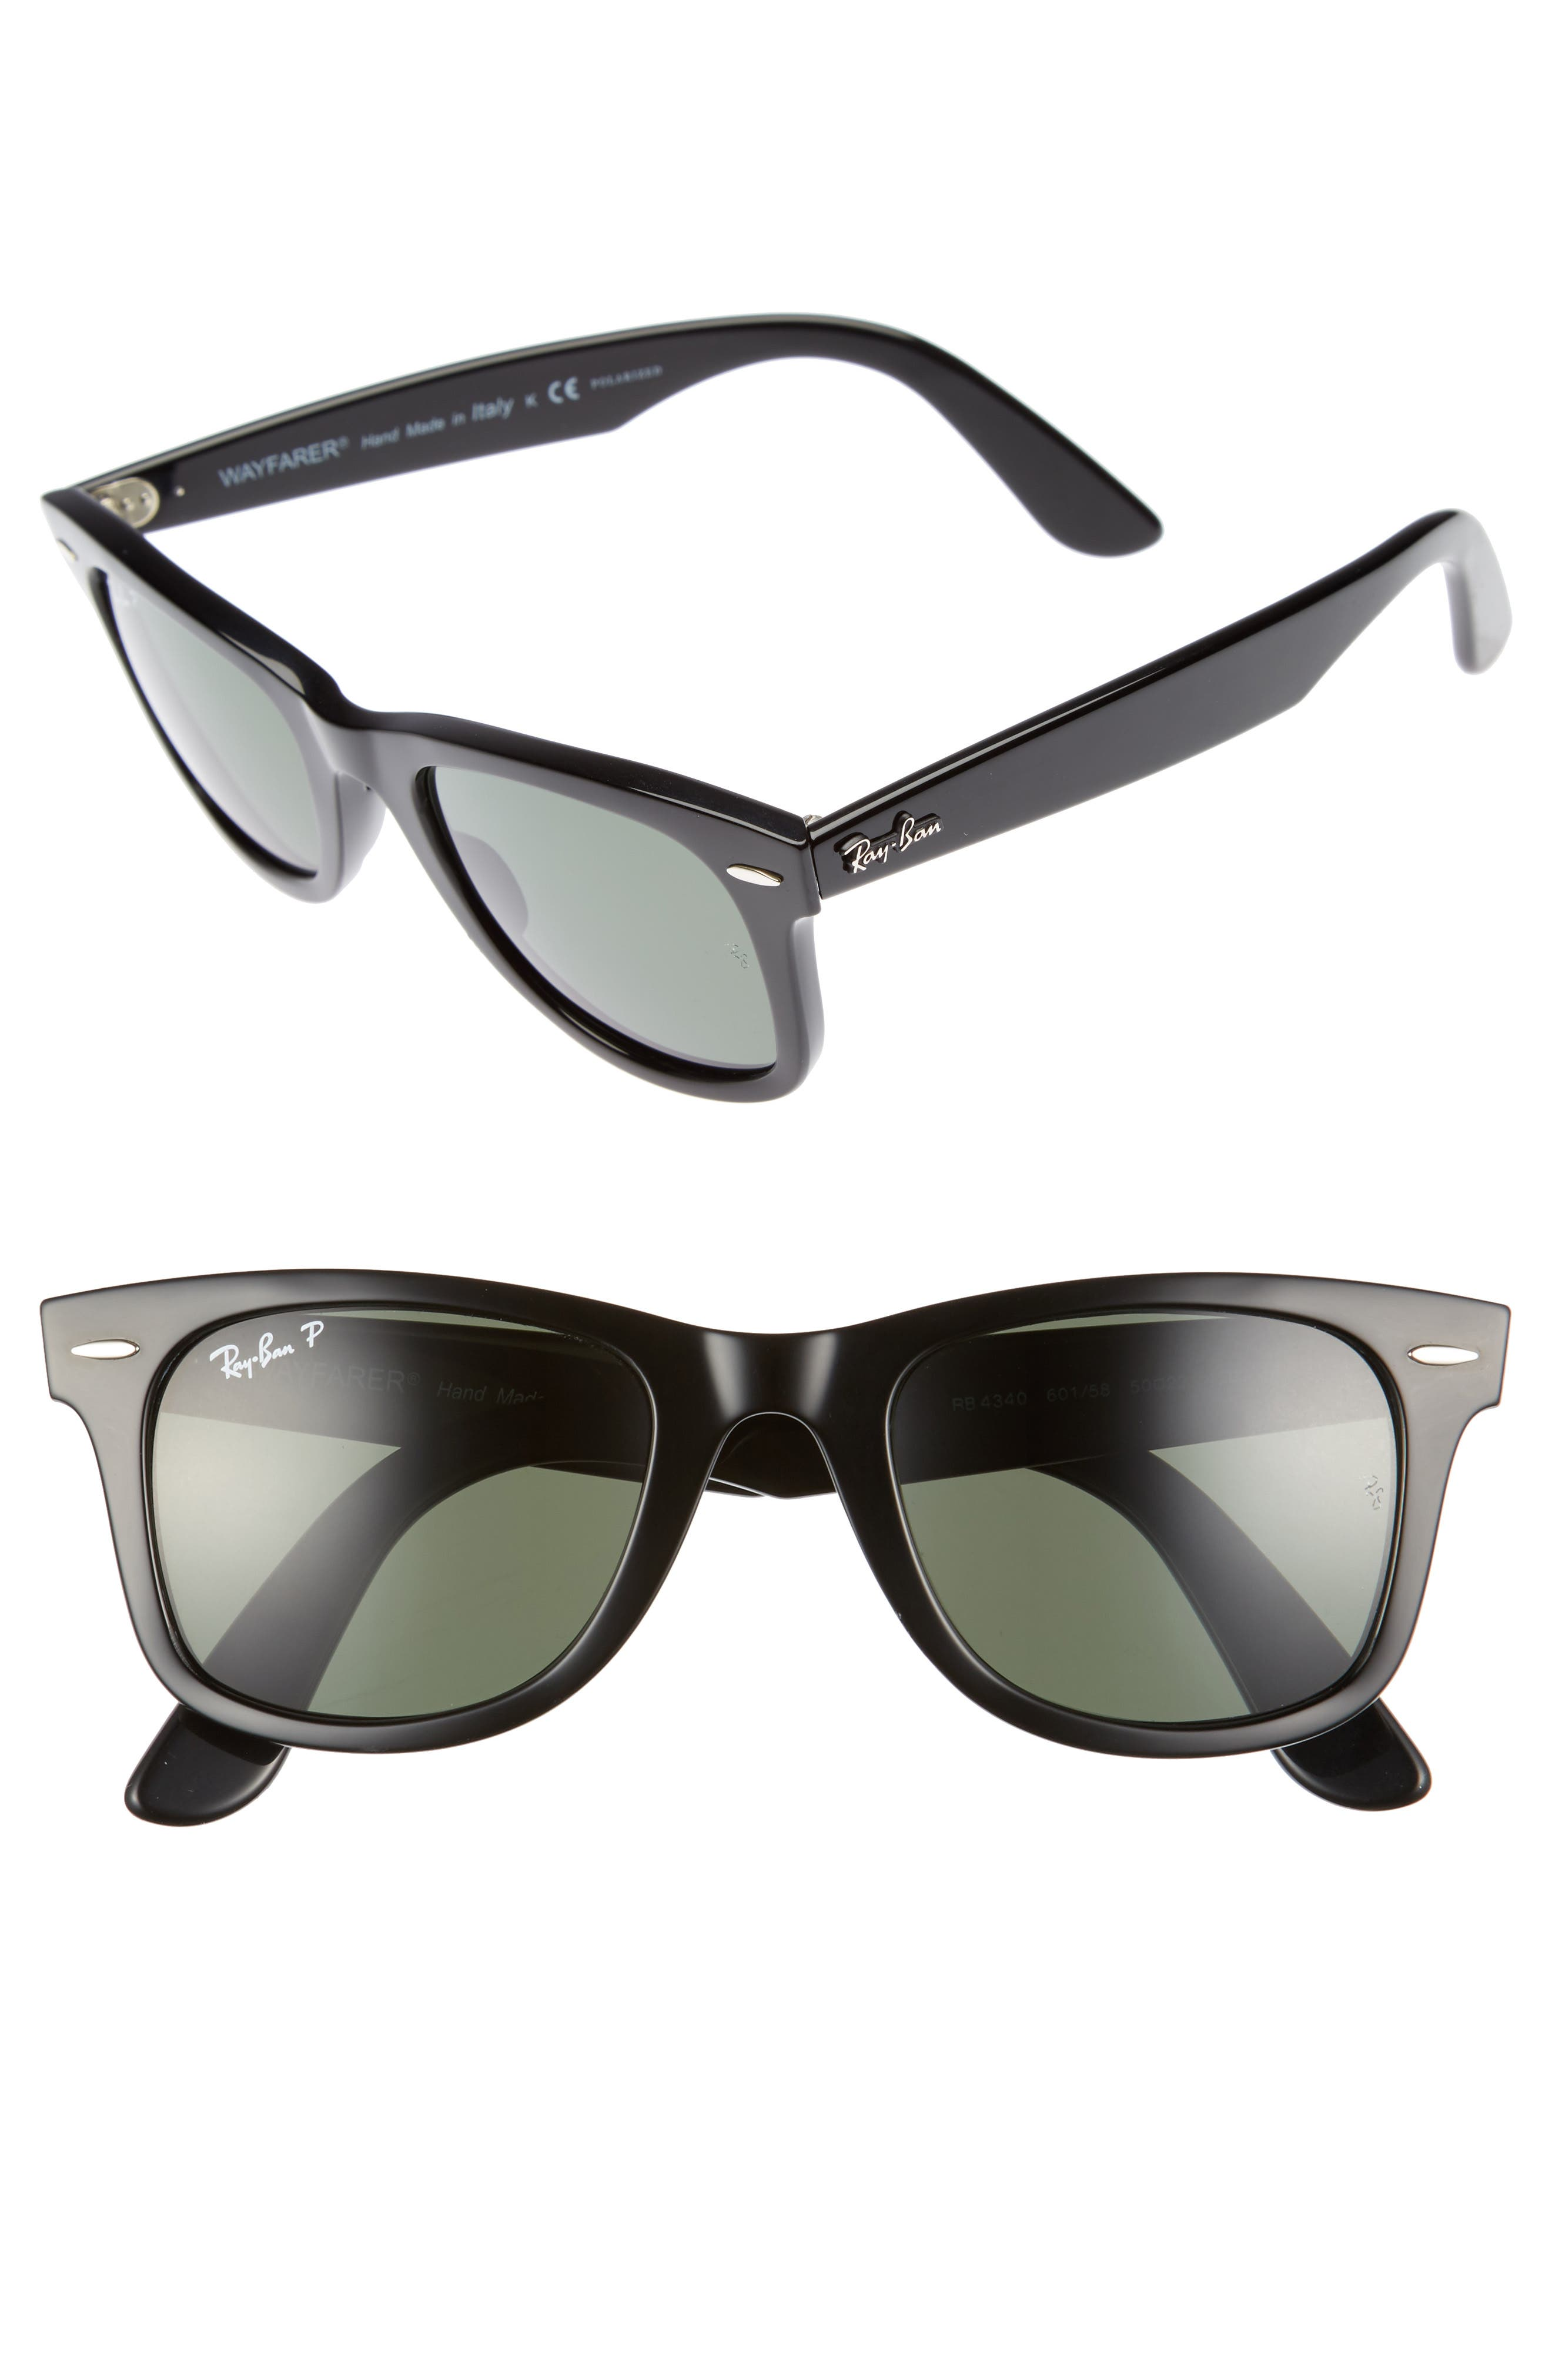 50mm Polarized Wayfarer Sunglasses,                         Main,                         color, Black